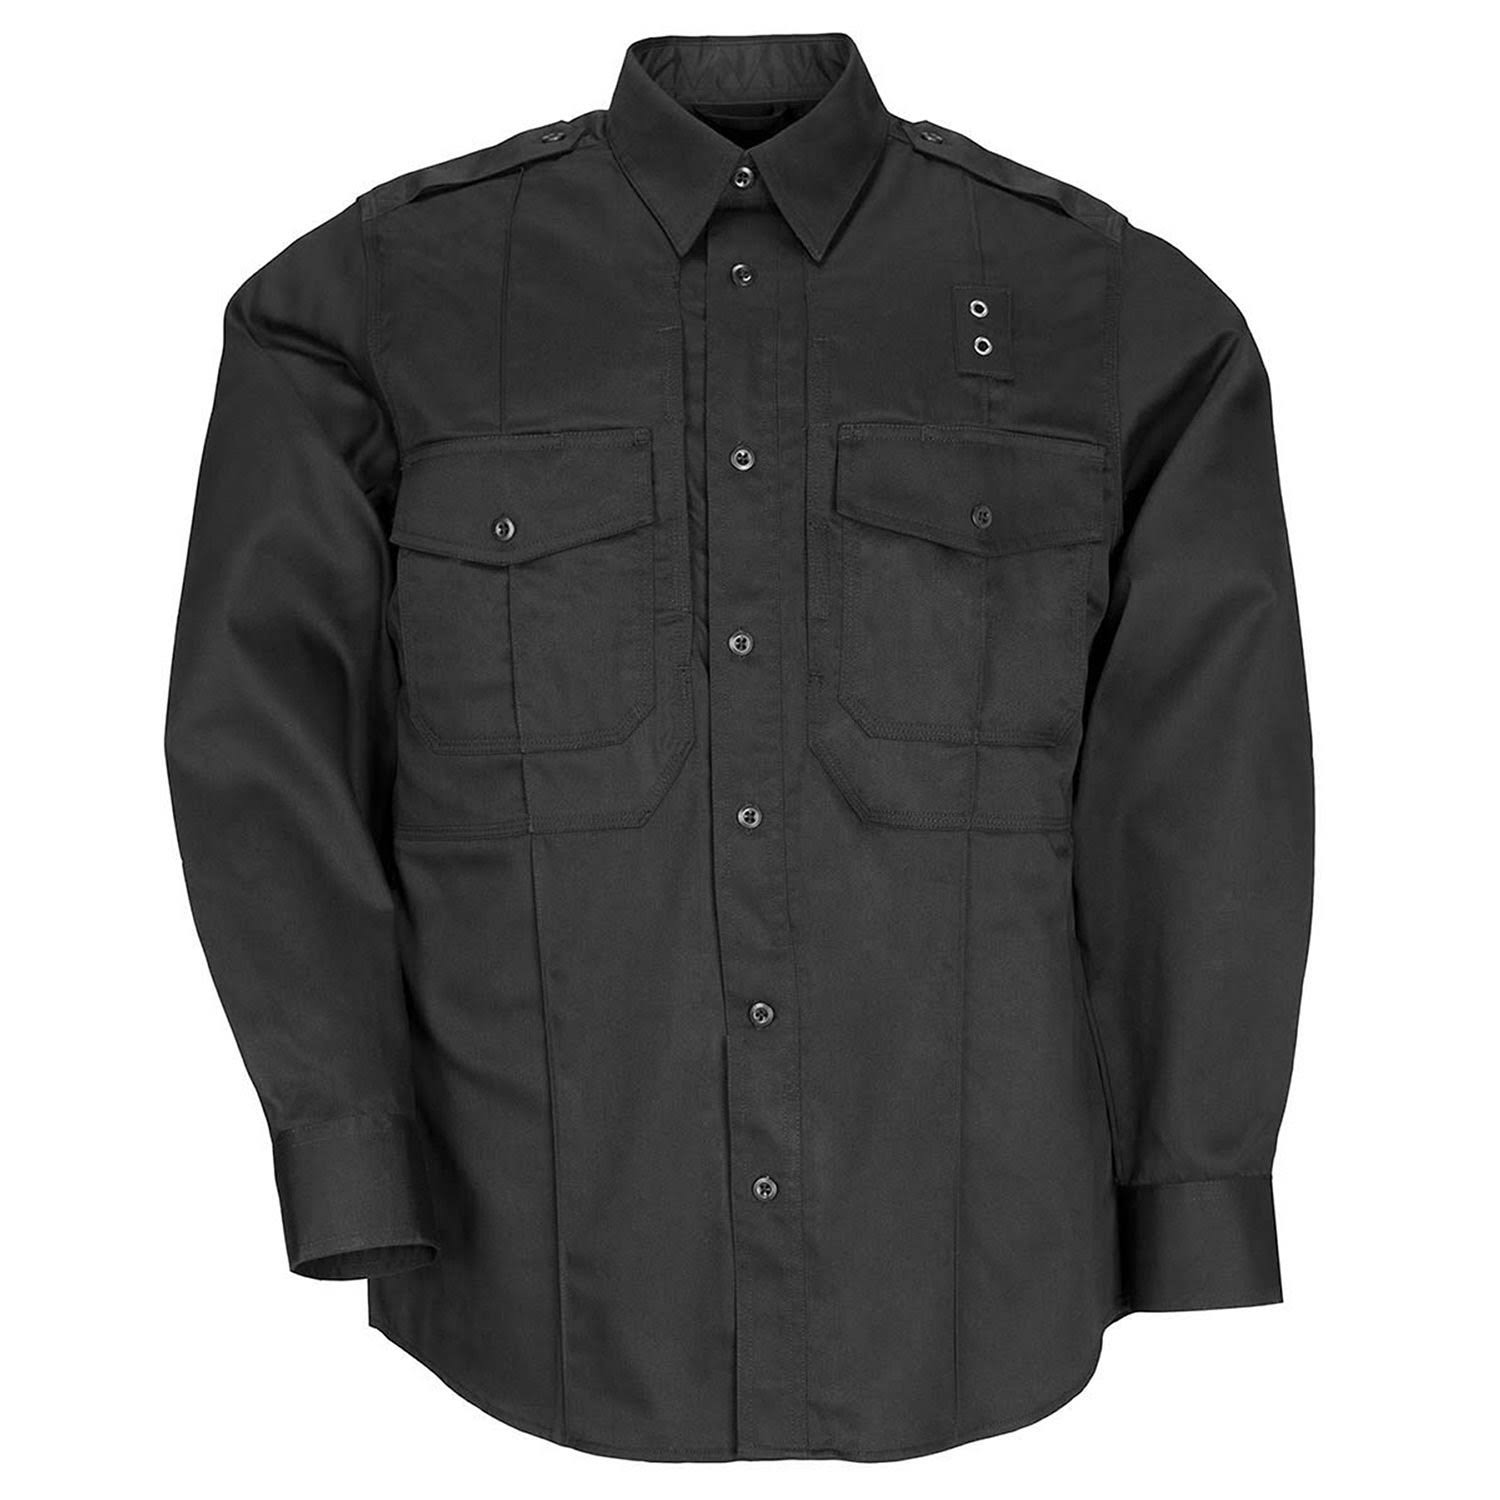 5.11 Tactical Men's PDU Long Sleeve Twill Class B Shirt Black